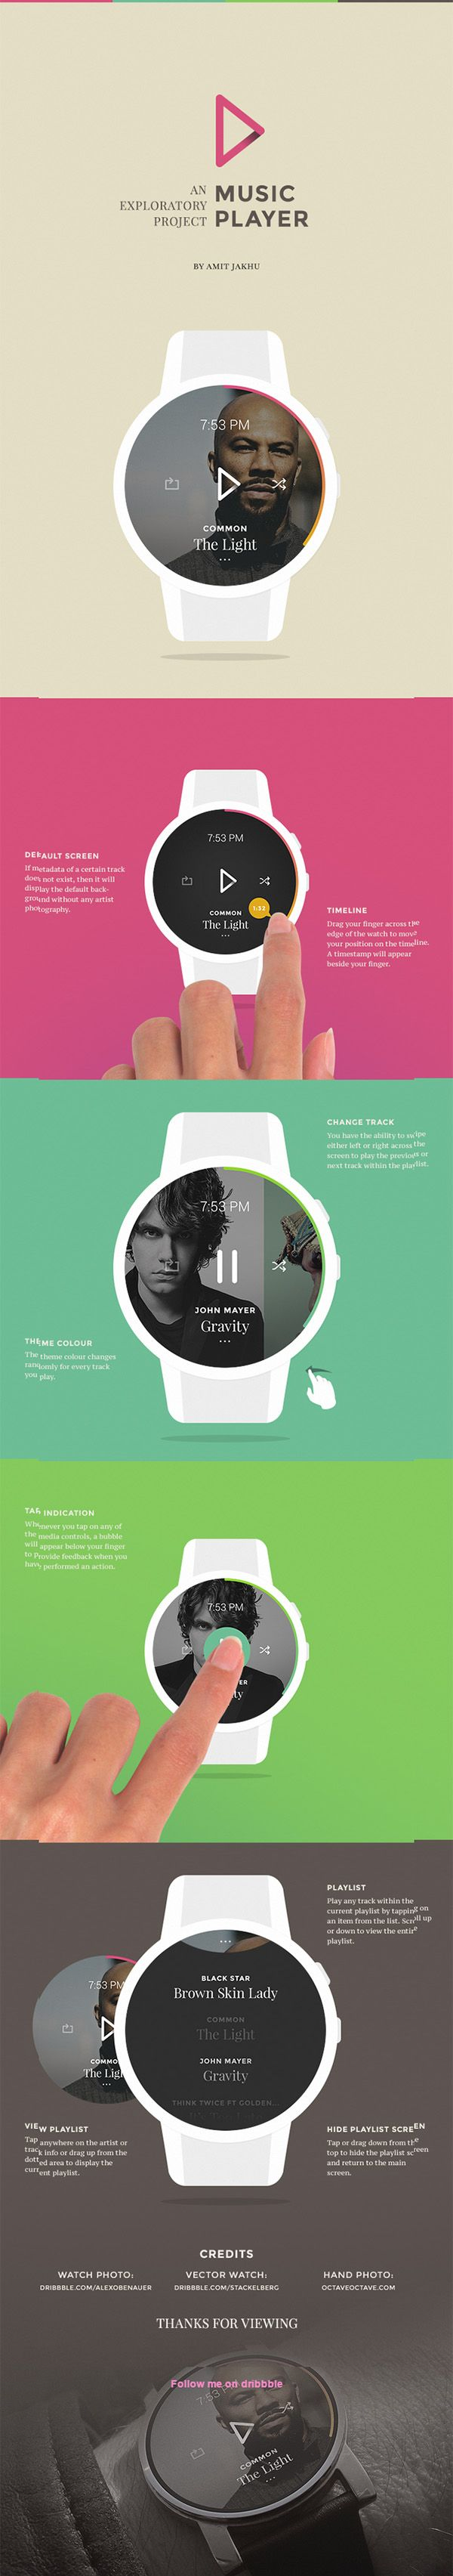 SMART WATCH MUSIC PLAYER - A conceptual and exploratory music application for a smartwatch. / by Amit Jakhu #smartwatch #app #behance